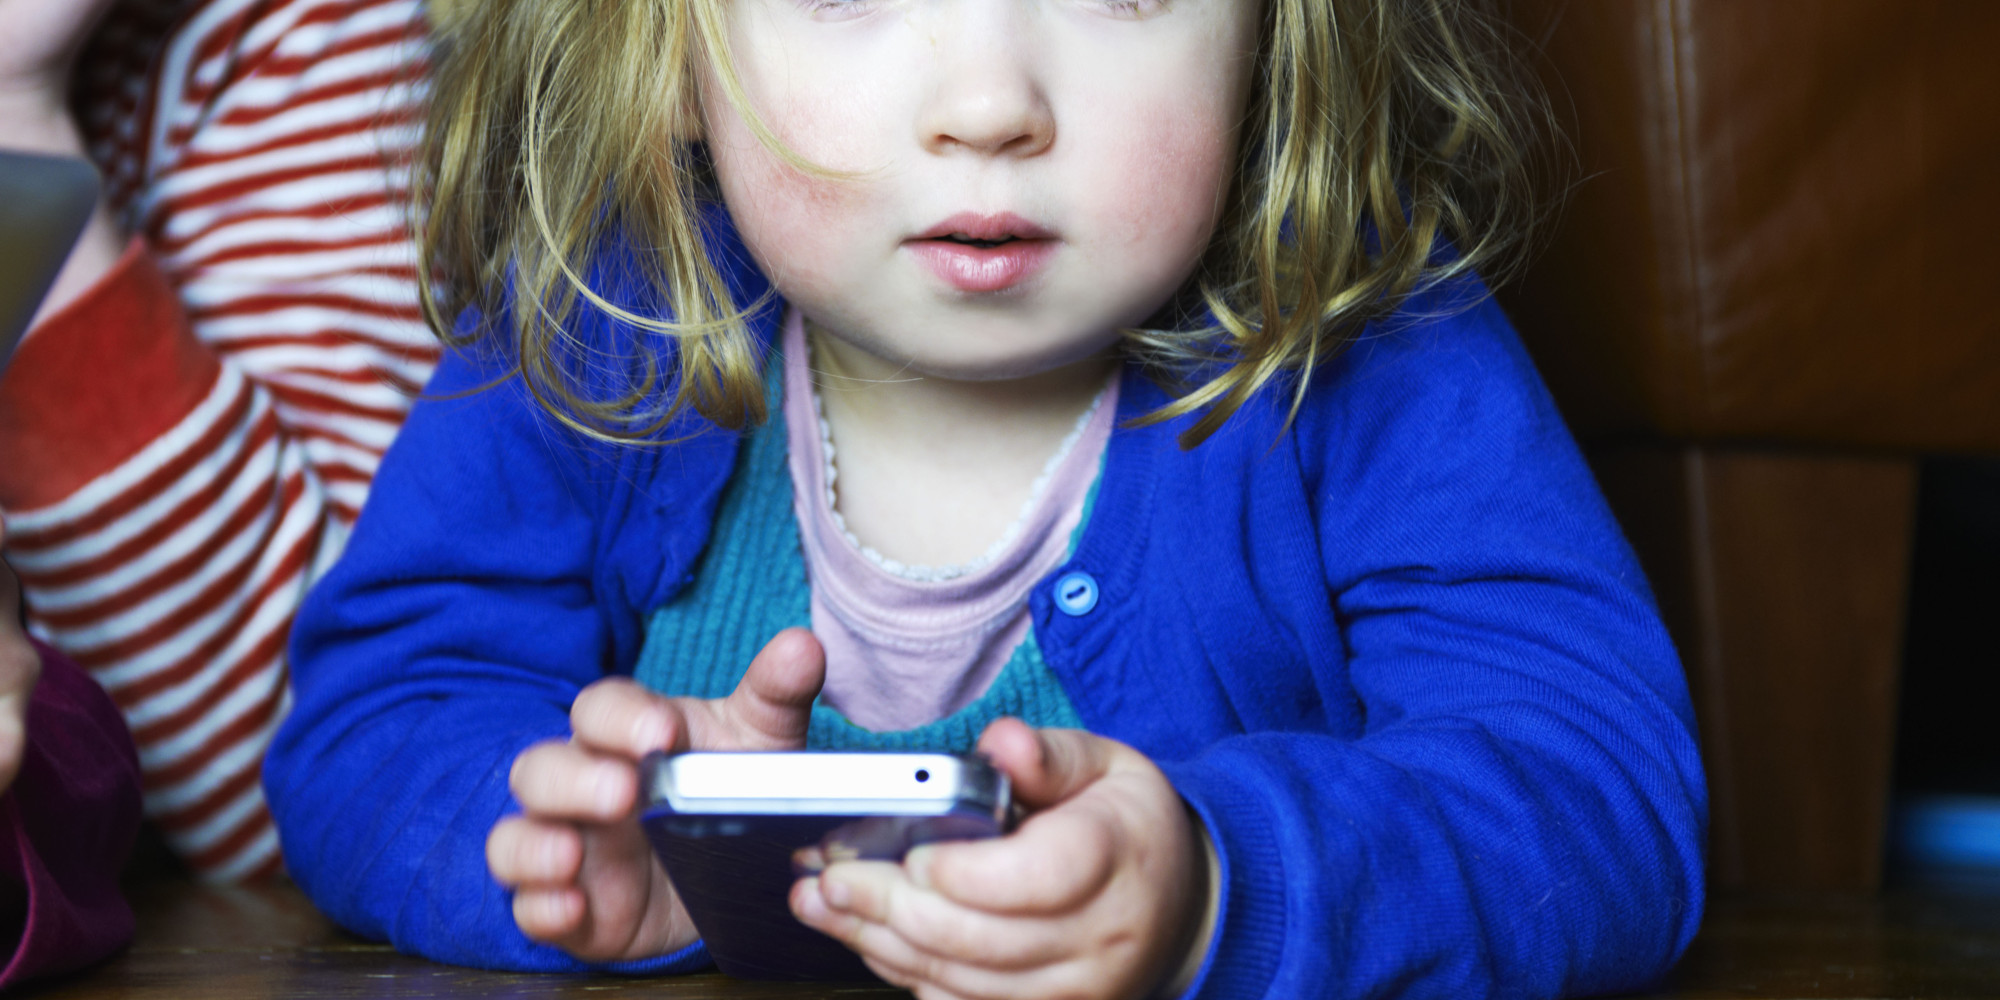 young girl holding mobile phone looking to camera